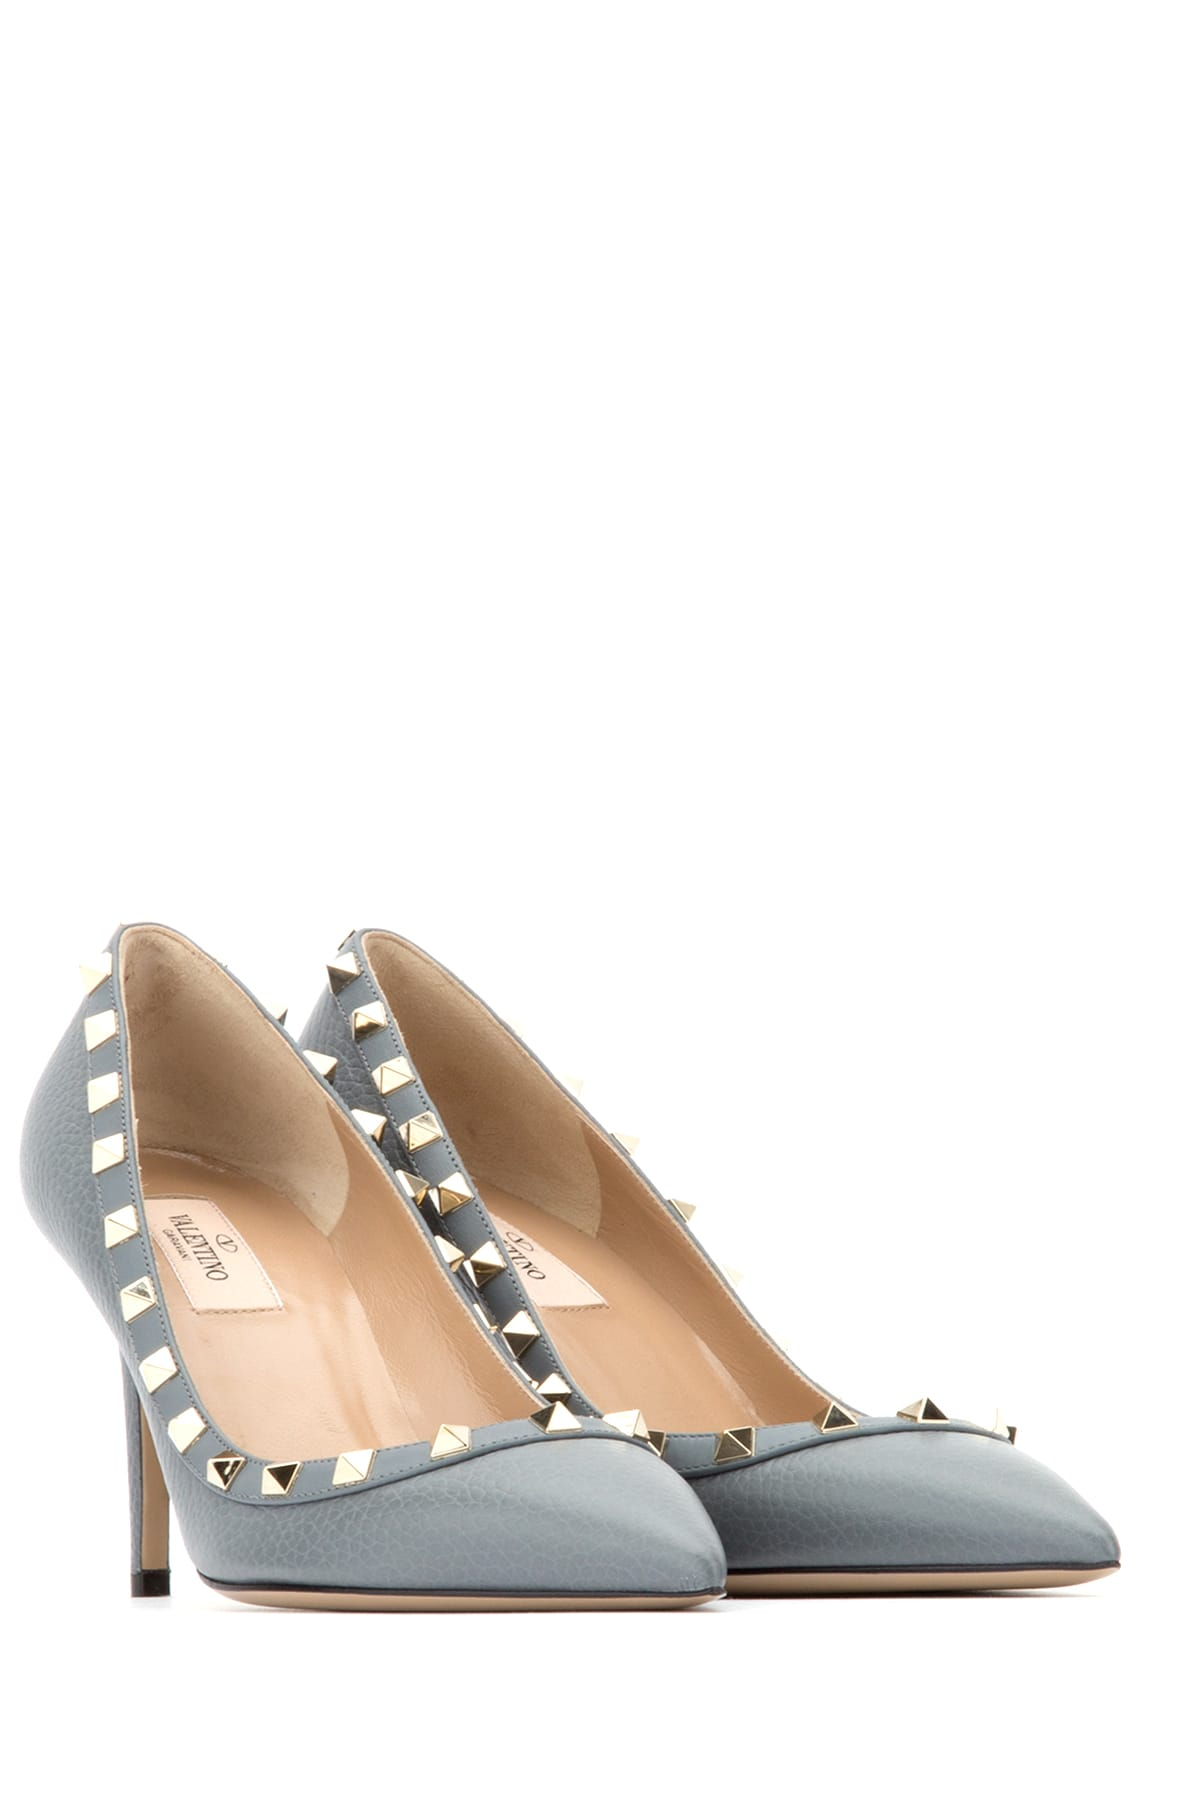 1_548138-VALENTINO-Grey-Rockstud-pumps.jpg